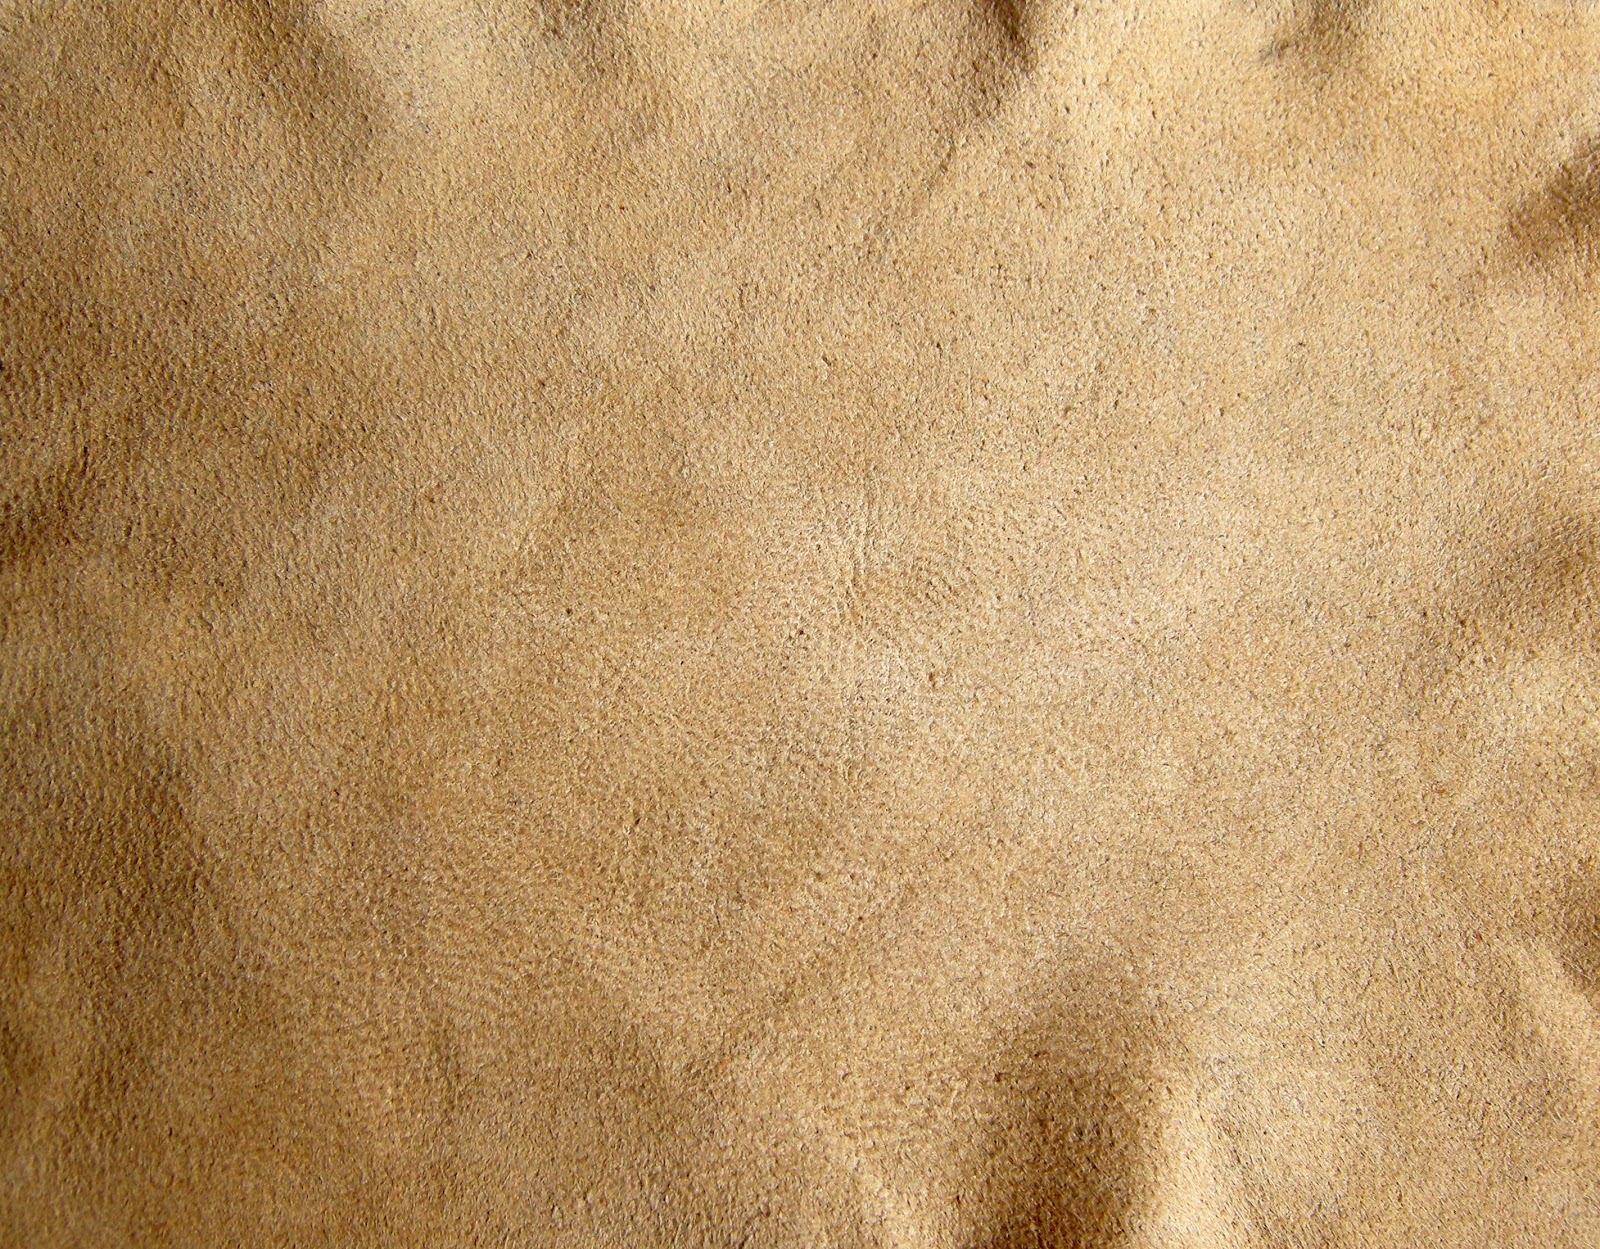 Free Leather Texture Photos High Resolution